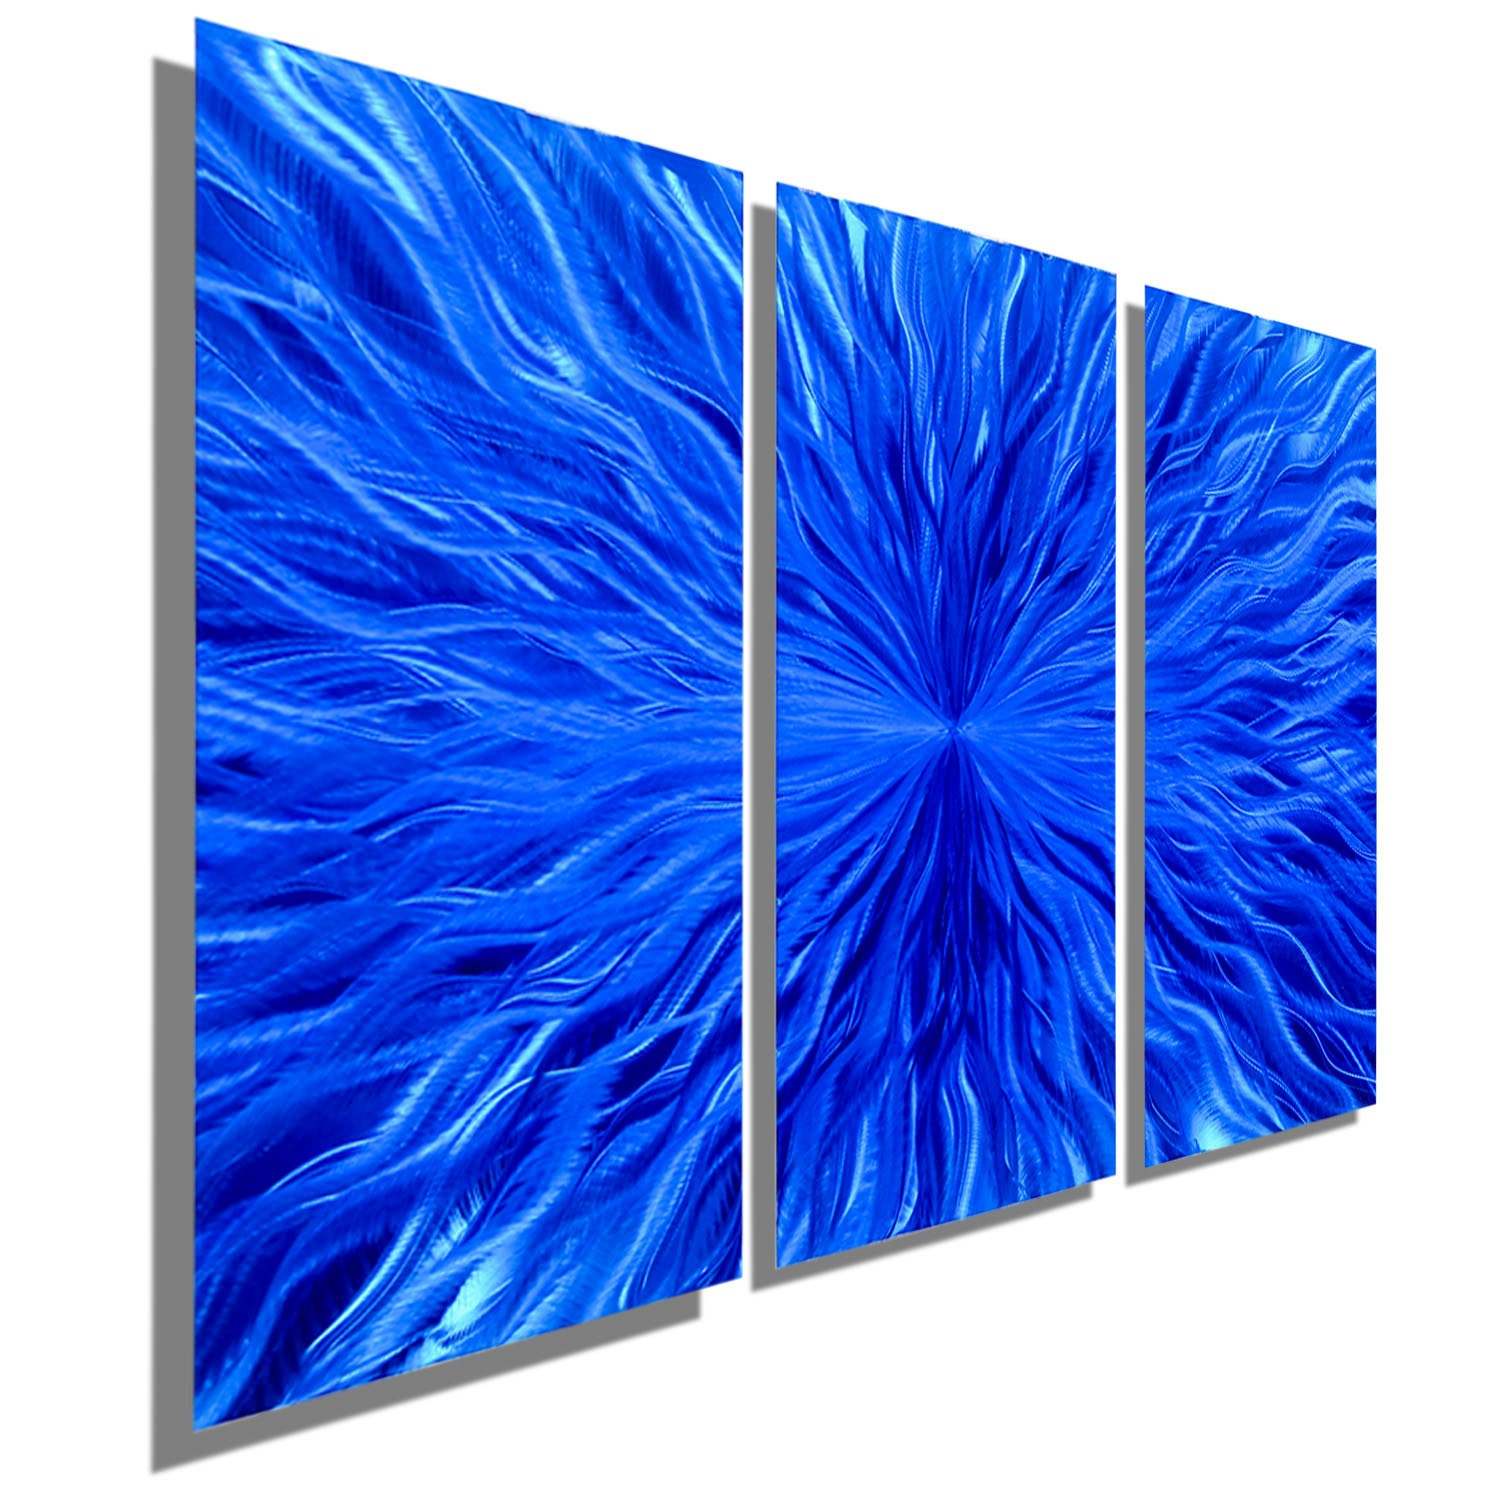 Blue Metal Wall Decor Impressive Multi Panel Contemporary Metal Wall Decor In Blue Modern Decorating Inspiration